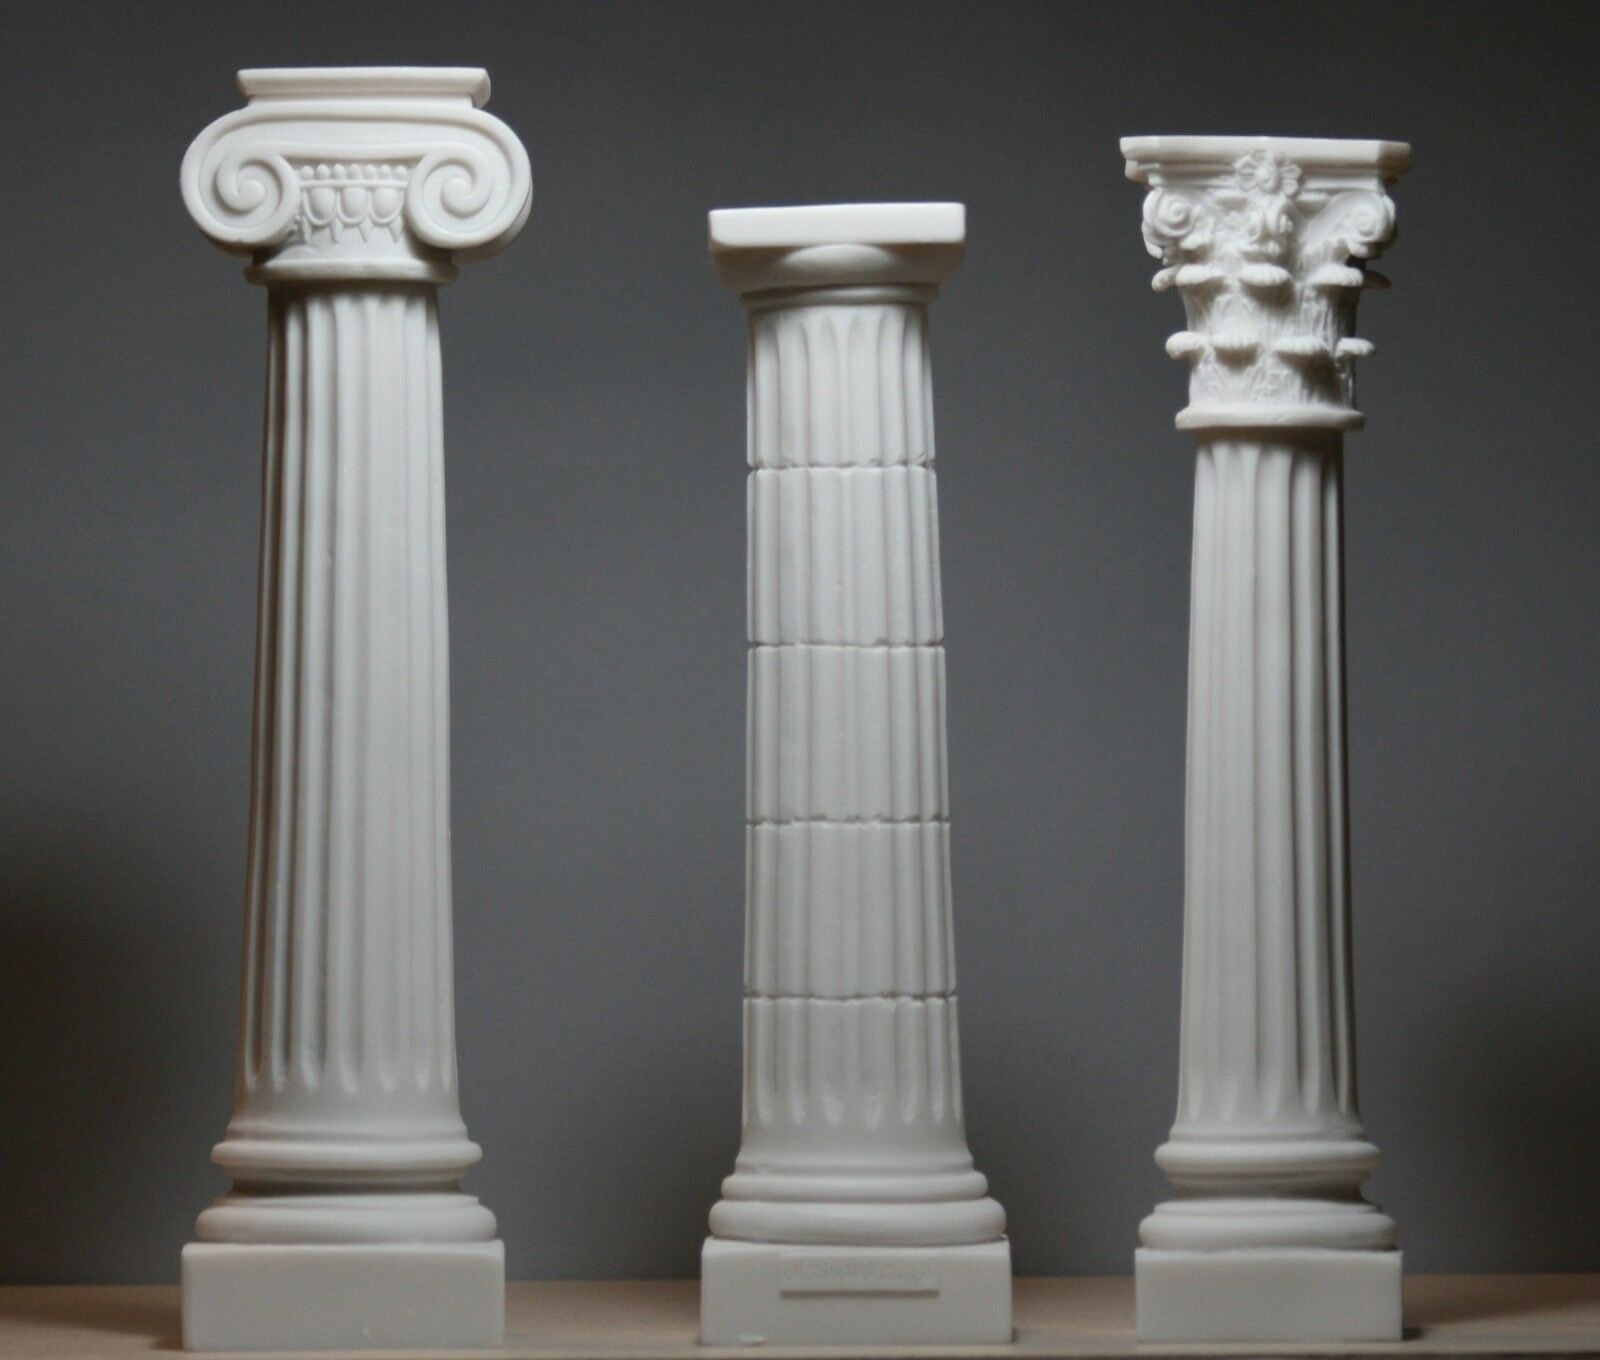 doric ionic corinthian Roman columns -- corinthian on the right find this pin and more on sixth grade by adelheid13 roman columns -from left to right doric, ionic and corinthian studying architecture in the context of a charlotte mason education (includes suggestions for scheduling and method of study).